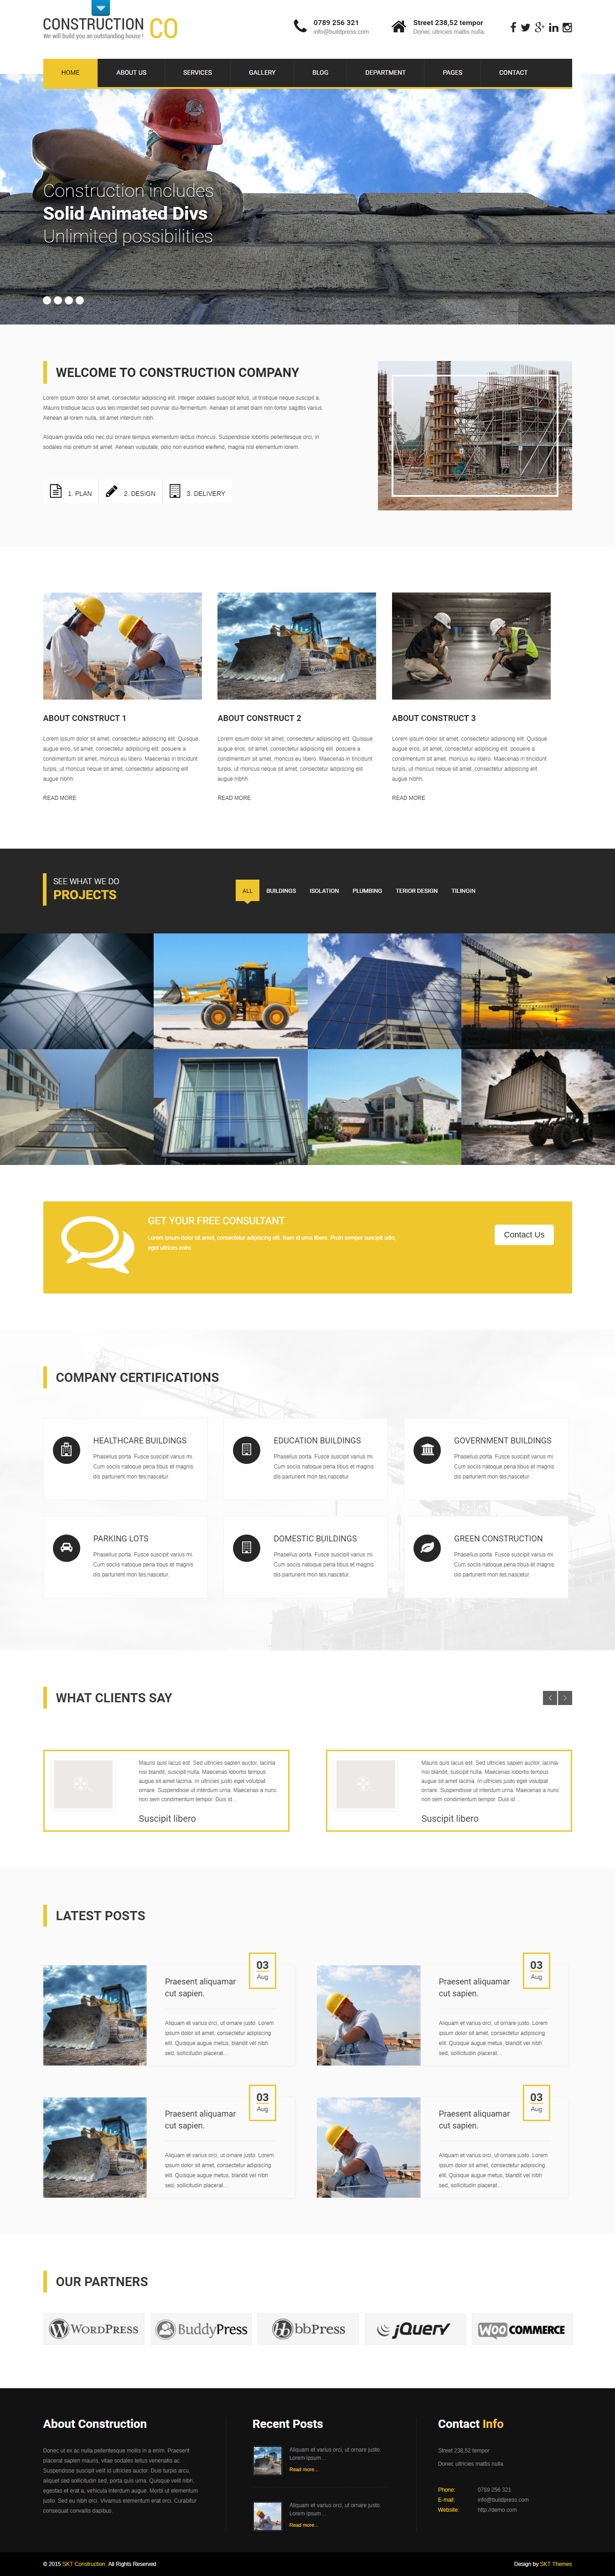 SKT Construction Pro - Best Premium Construction Business Company WordPress Themes and Templates